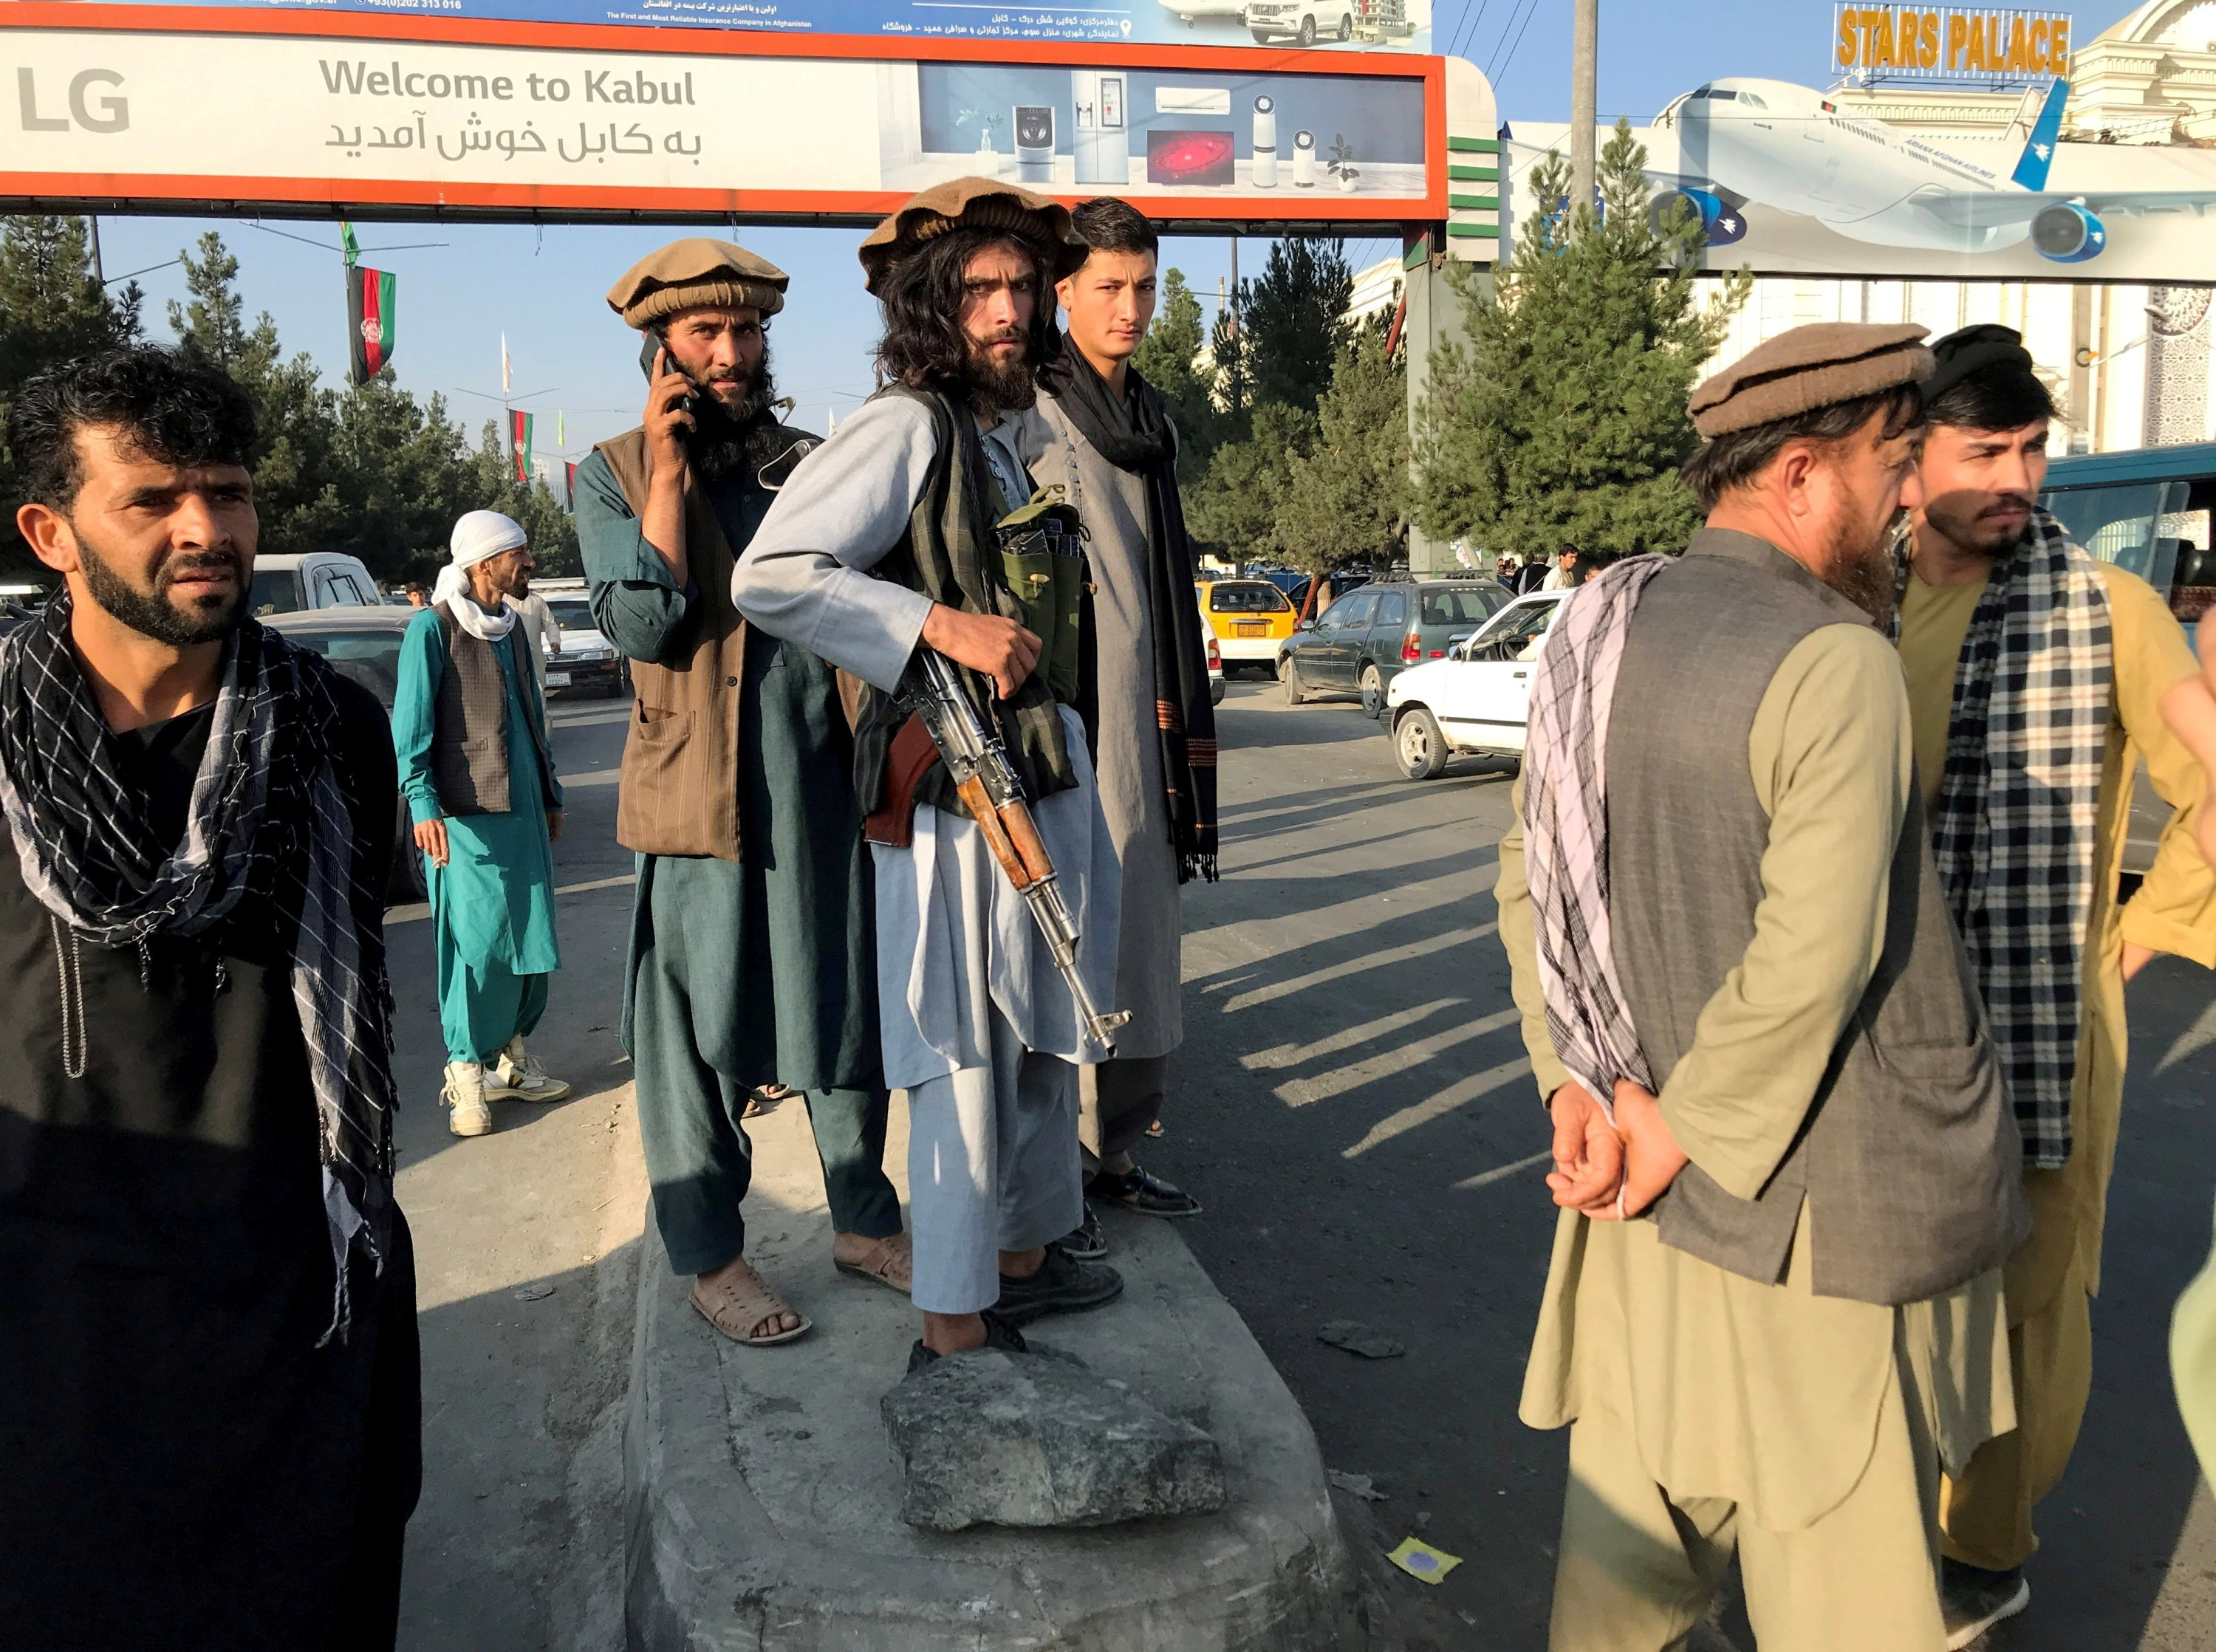 A Taliban member (C) stands outside Kabul Hamid Karzai International Airport in Kabul, Afghanistan, Aug. 16, 2021. (Reuters Photo)